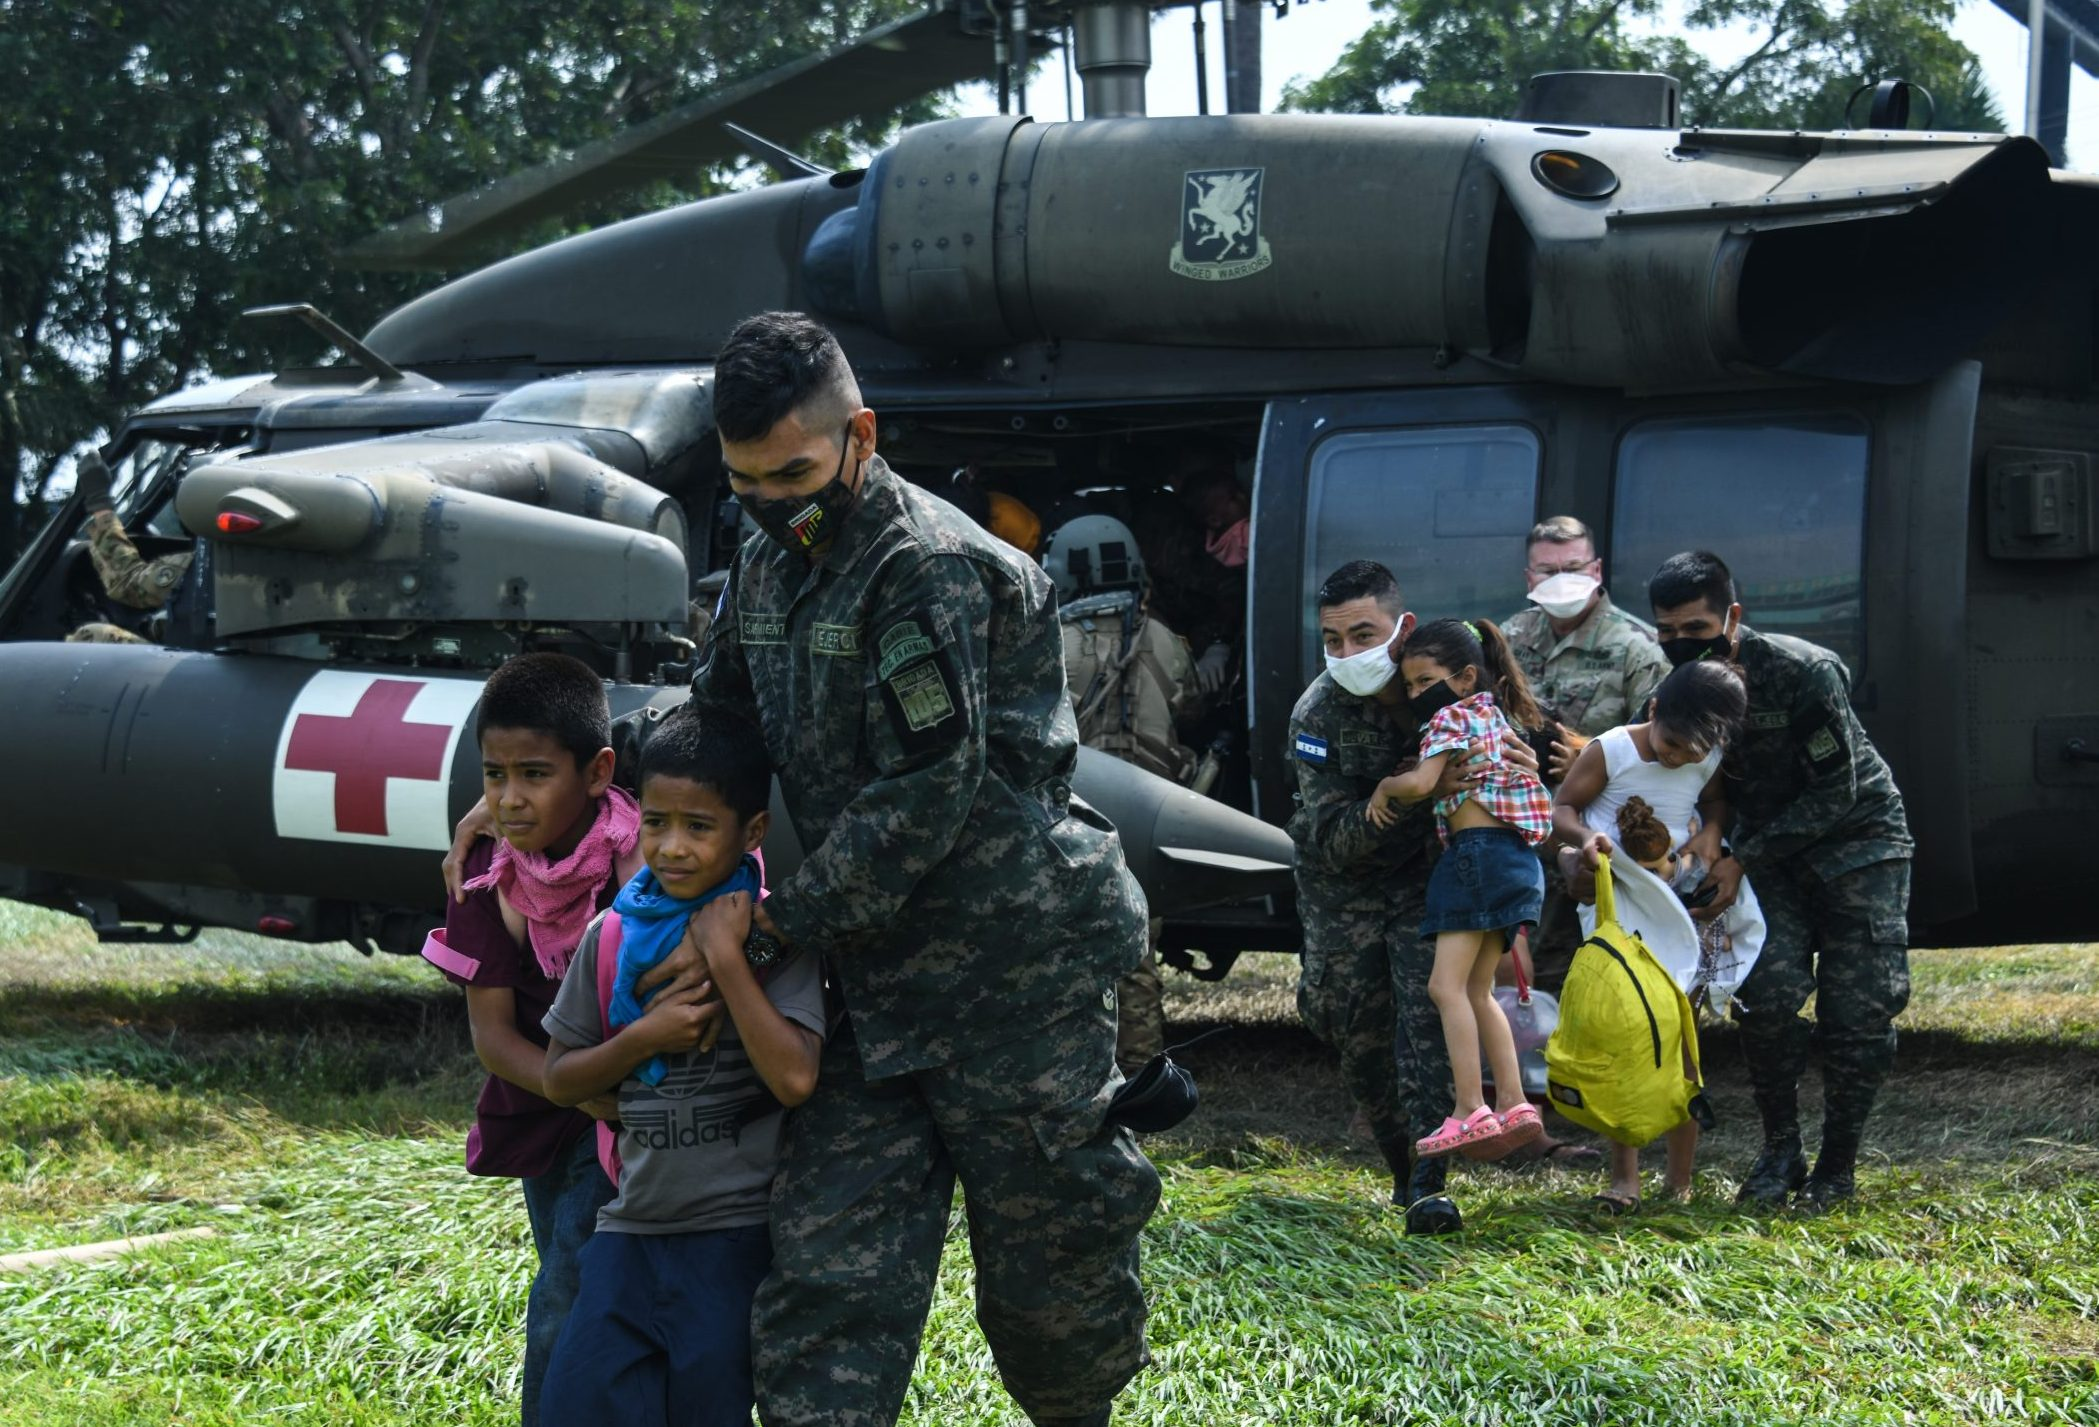 Joint Task Force-Bravo members and Honduran soldiers escort rescued Honduran family off of U.S. Army HH-60 Black Hawk helicopter at San Pedro Sula, Honduras, Nov. 13, 2020. JTF-Bravo's forward deployment to Honduras highlights the importance of cooperation and training with partners to build trust and teamwork. (U.S. Air Force photo by Staff Sgt. Elijaih Tiggs) (Photo Credit: Staff Sgt. Elijaih Tiggs)